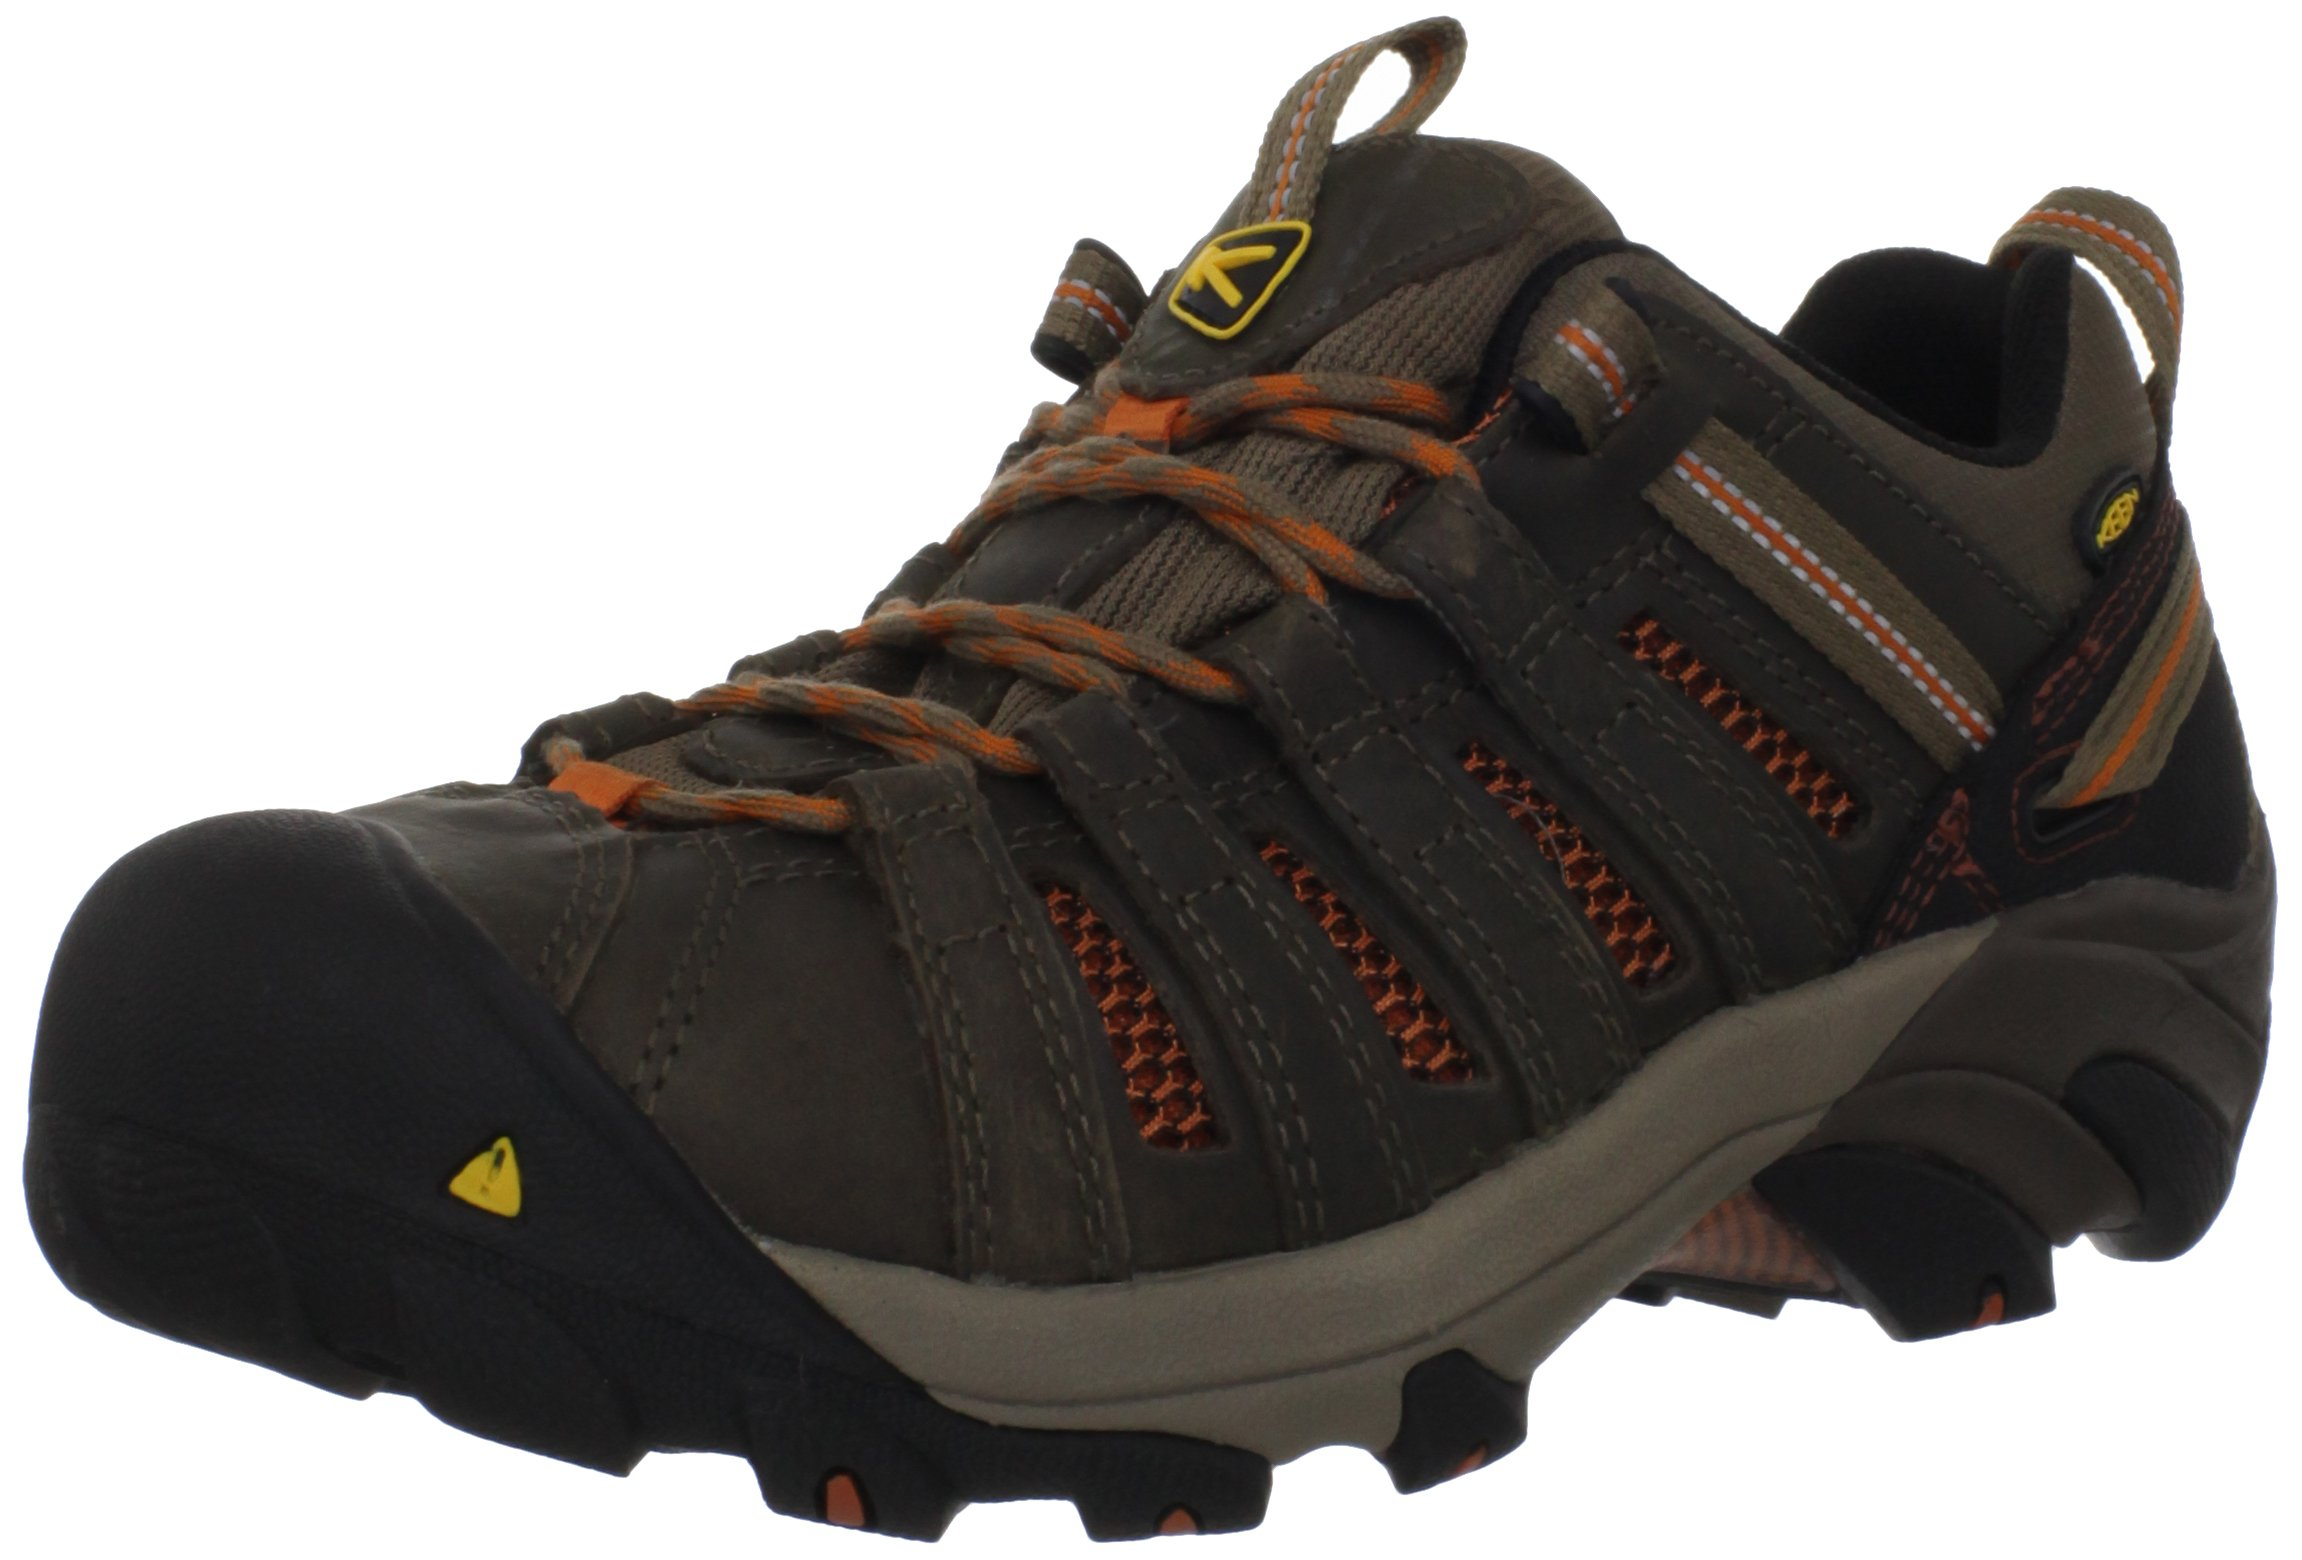 KEEN Utility Men's Flint Low Steel Toe Work Shoe,Shitake/Rust,13 EE US by KEEN Utility